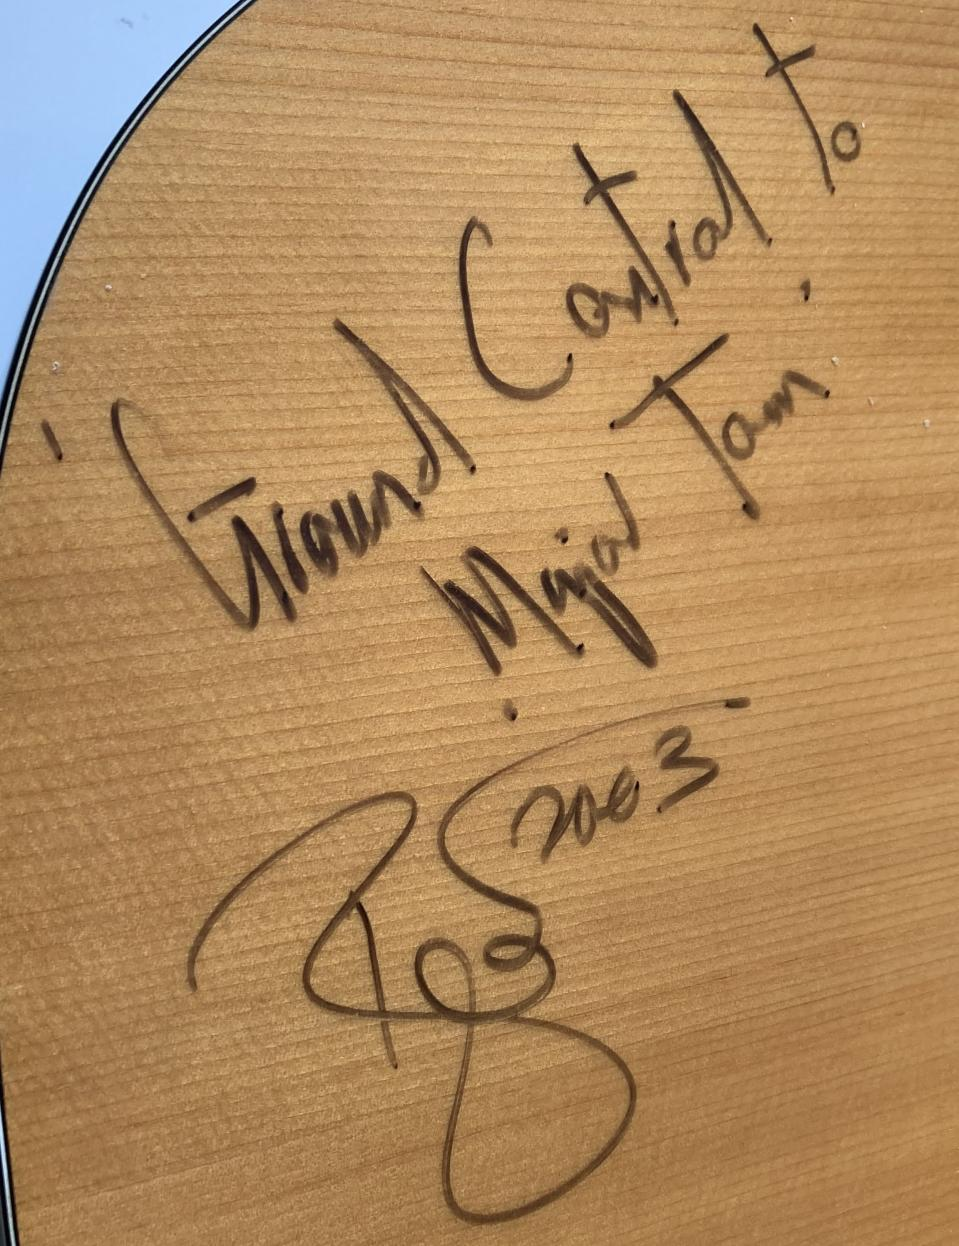 The guitar could fetch thousands of pounds